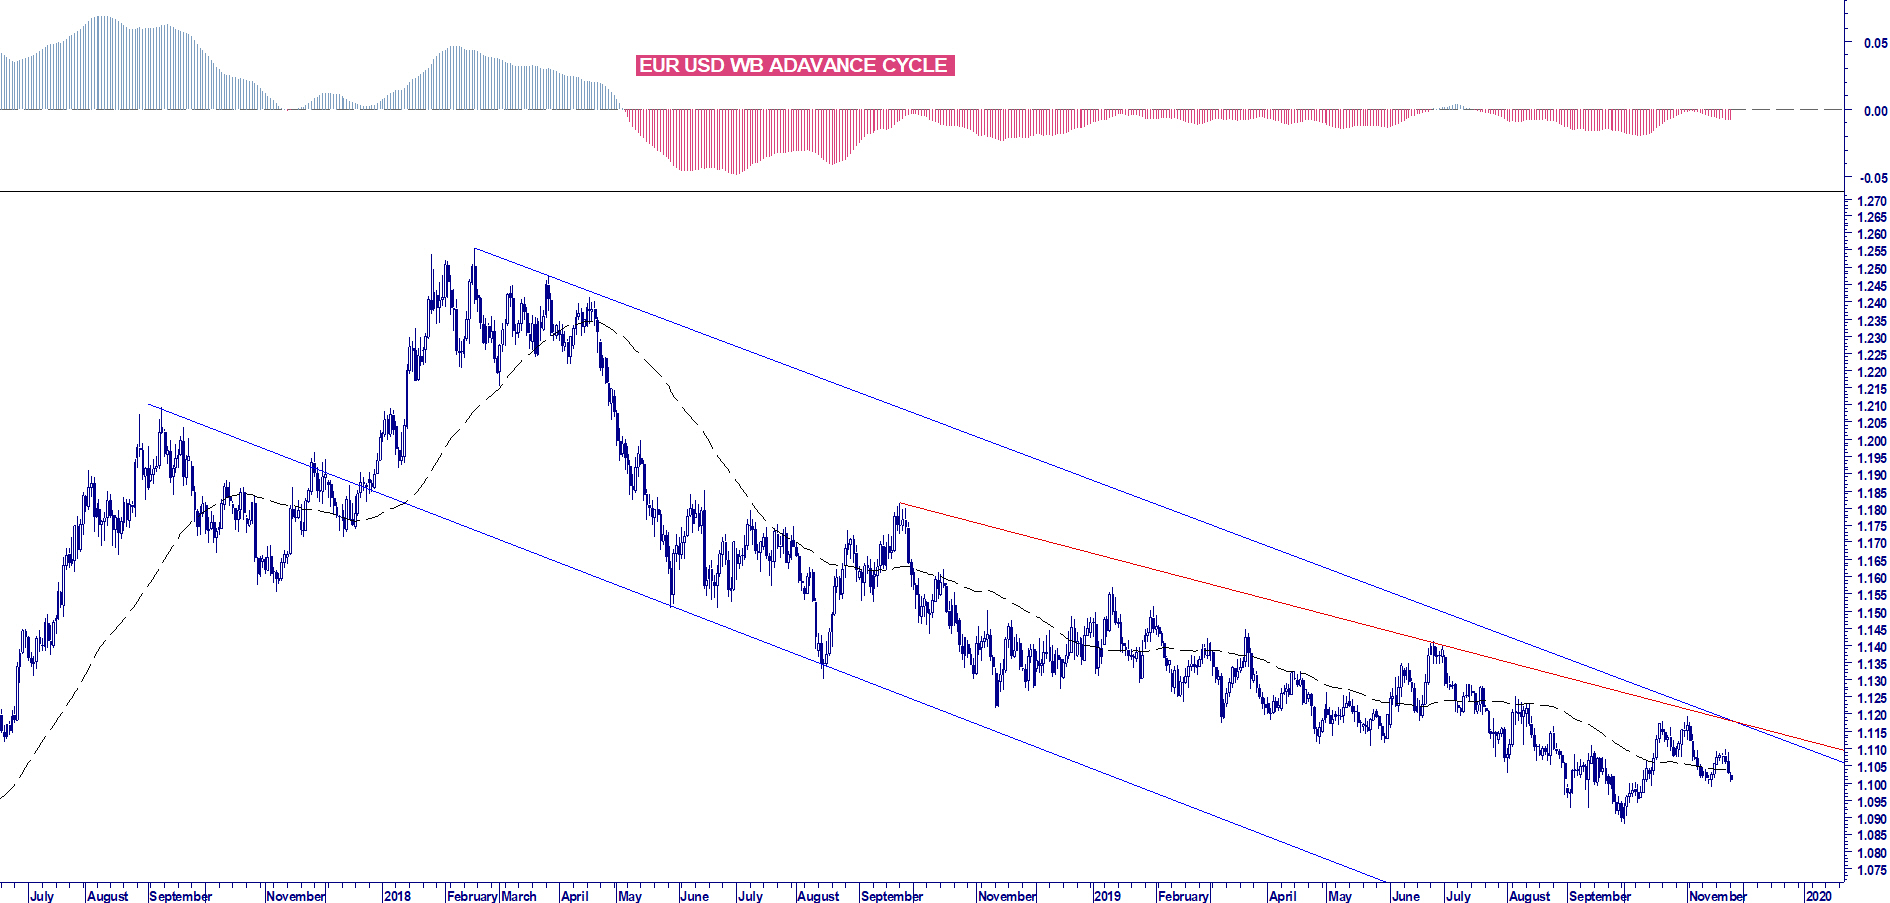 WB RISK MANAGEMENT EUR USD